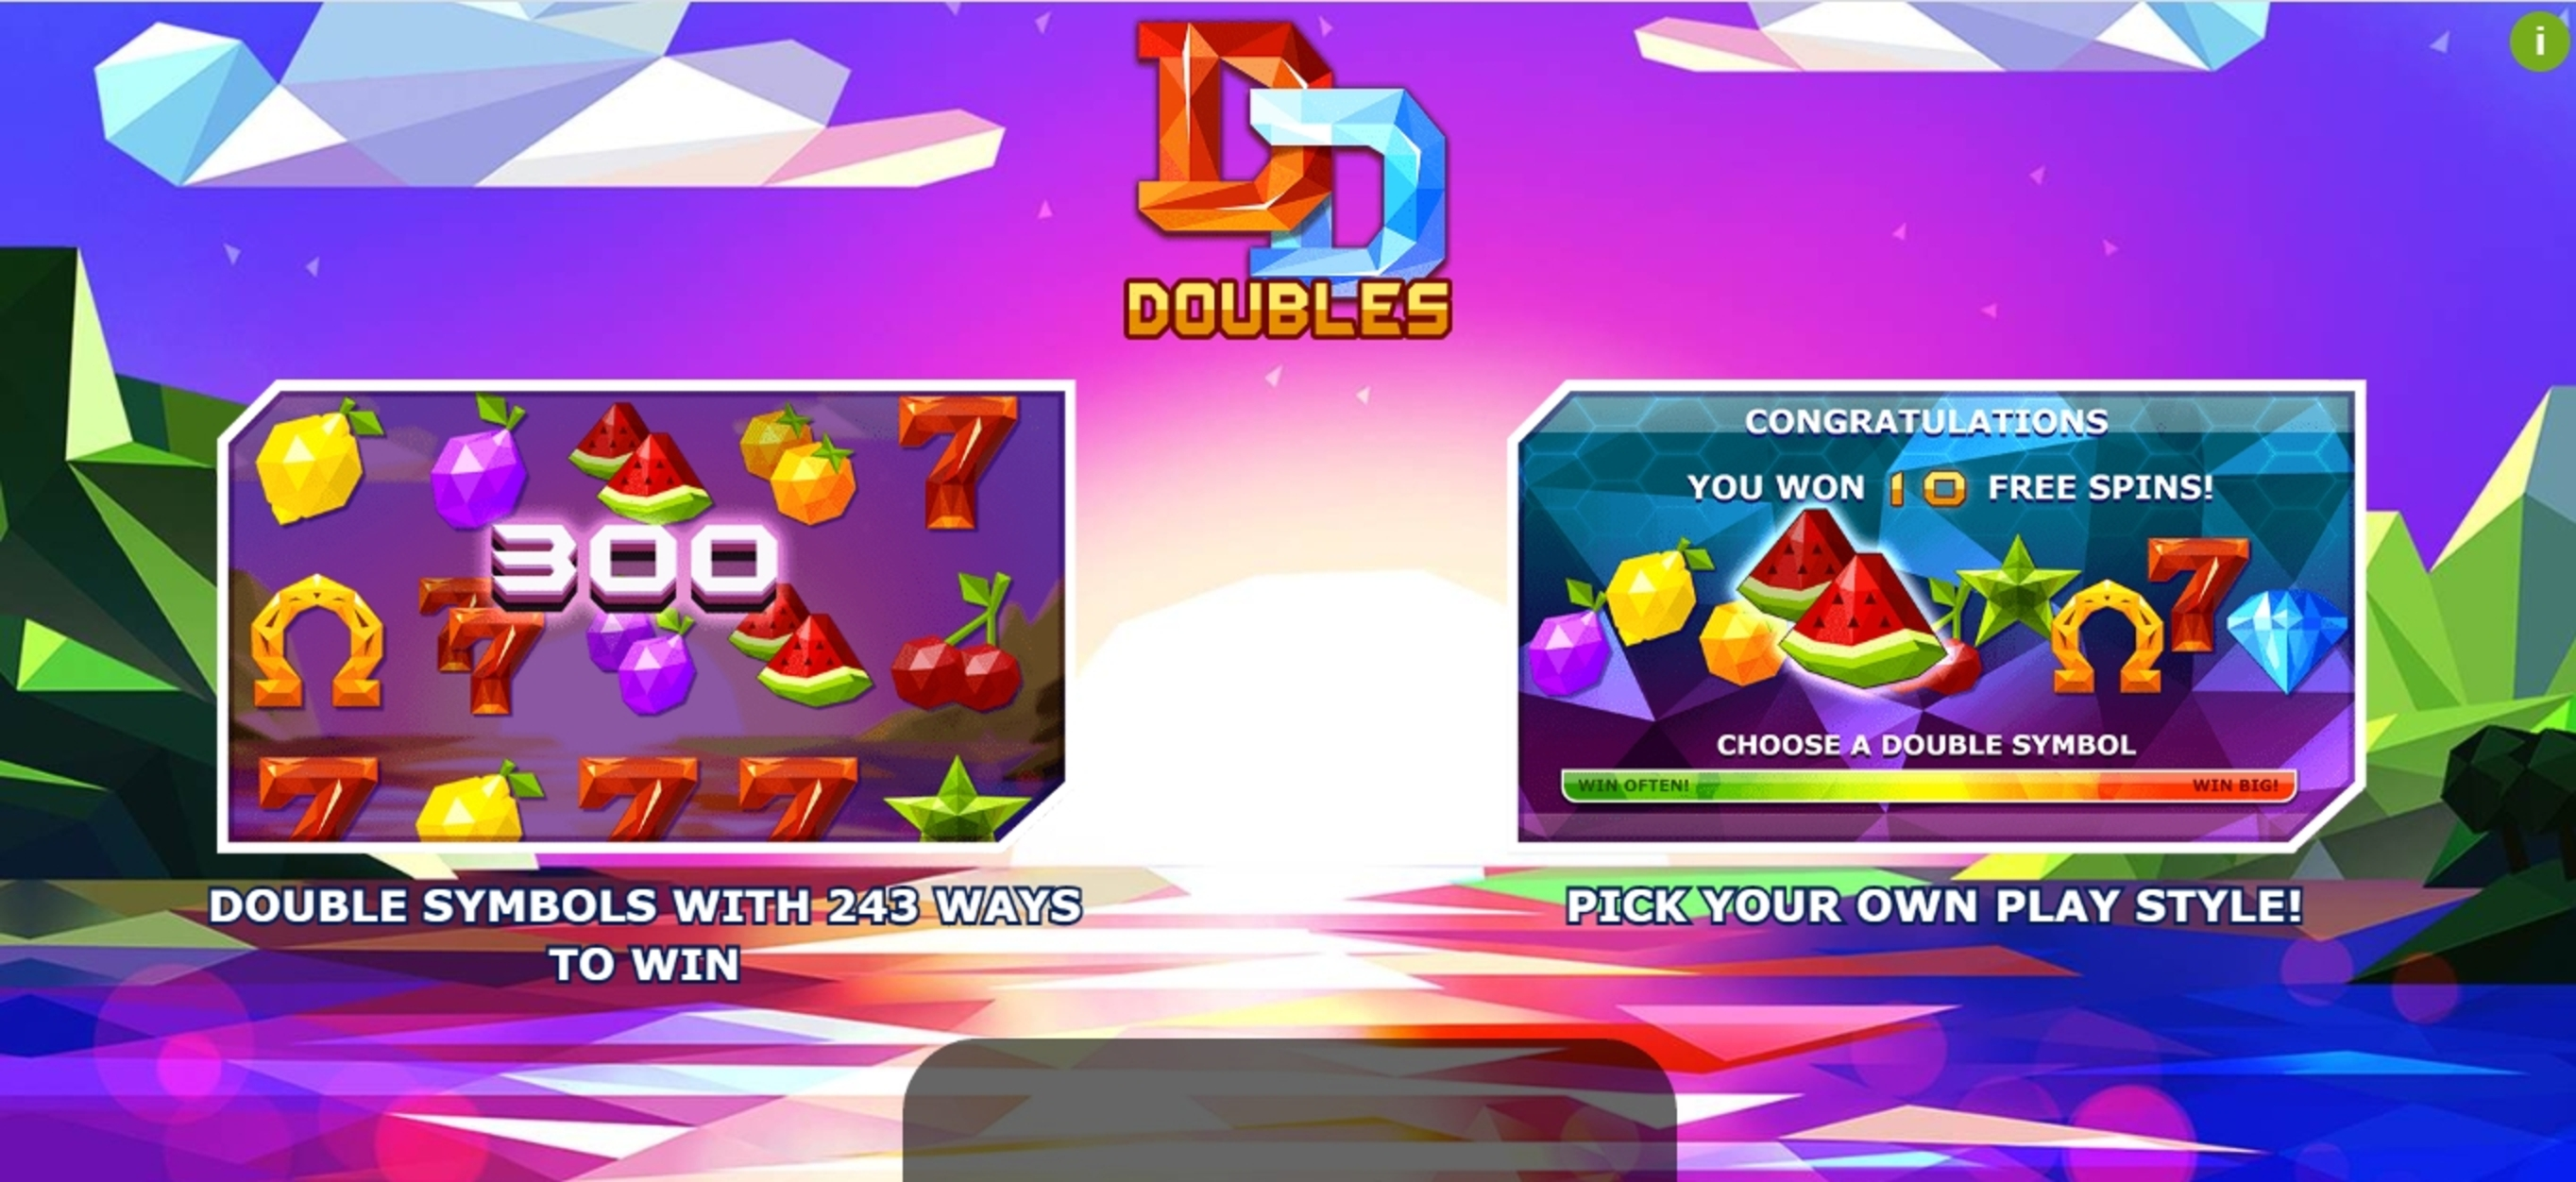 Play Doubles Free Casino Slot Game by Yggdrasil